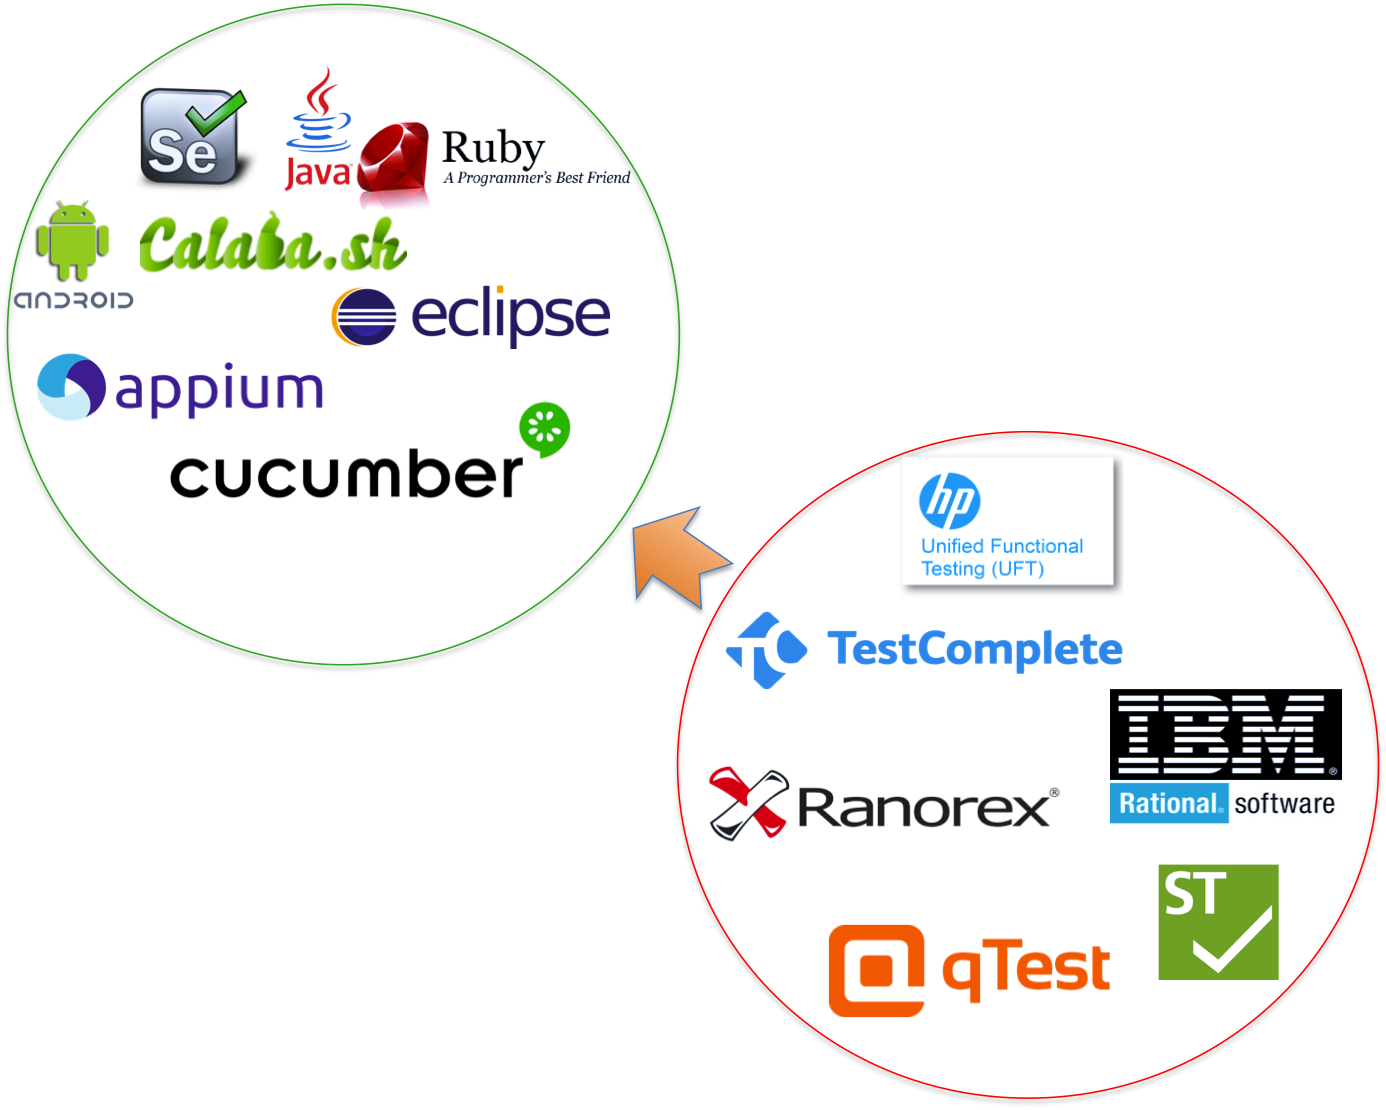 Why consider Open Source Tools for Test Automation?